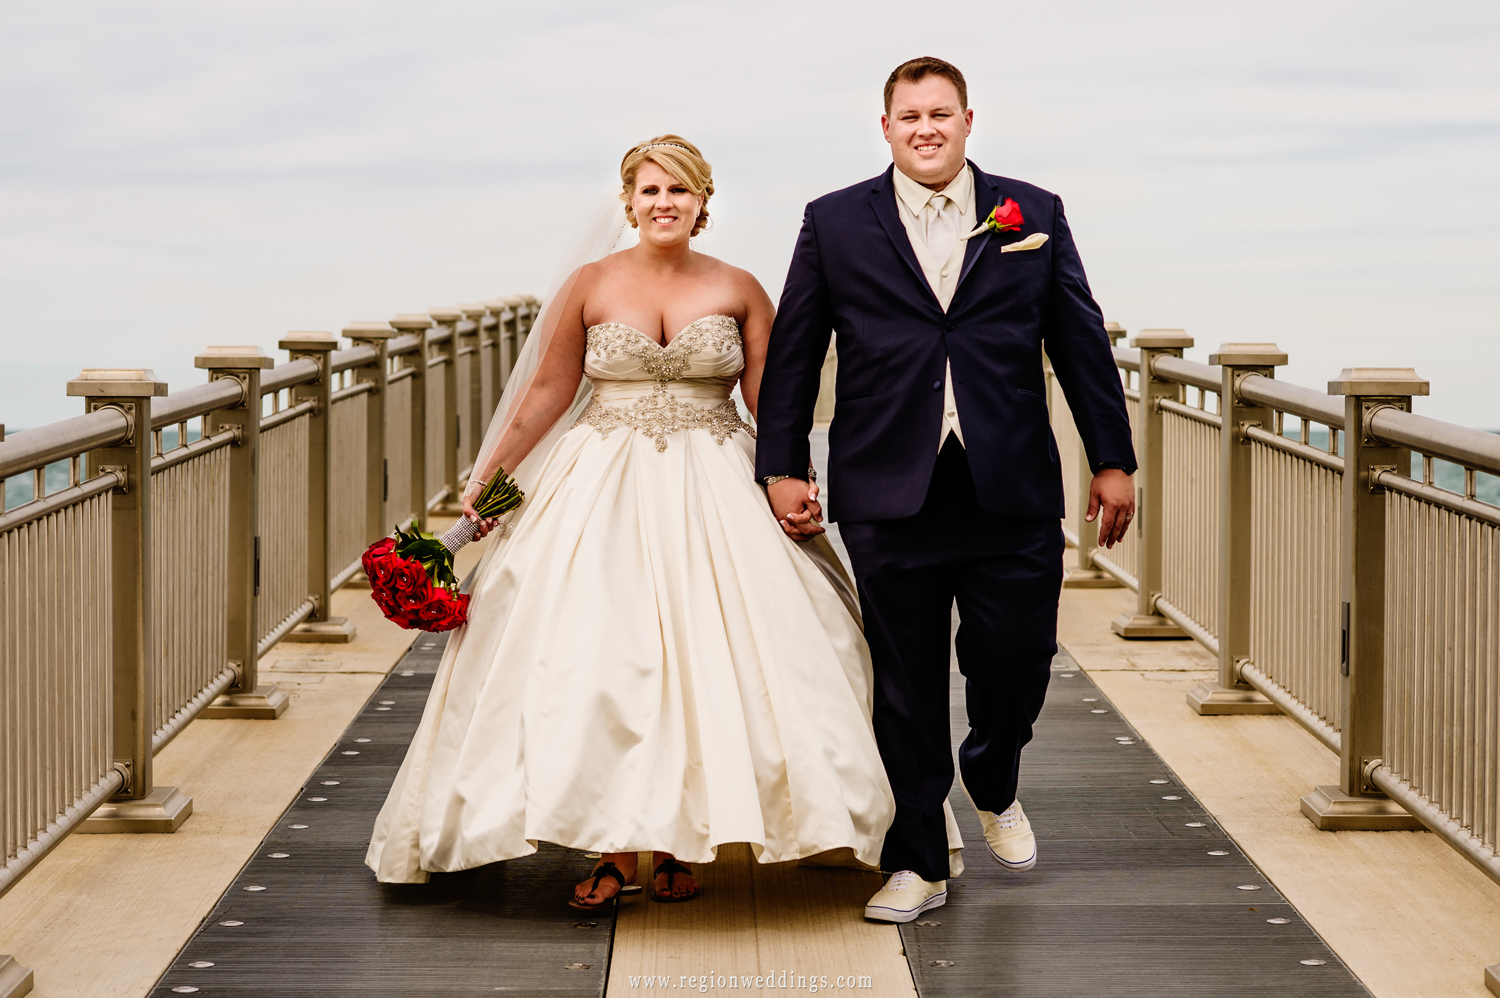 The bride and groom take a walk along the pier at Whiting Lakefront Park.